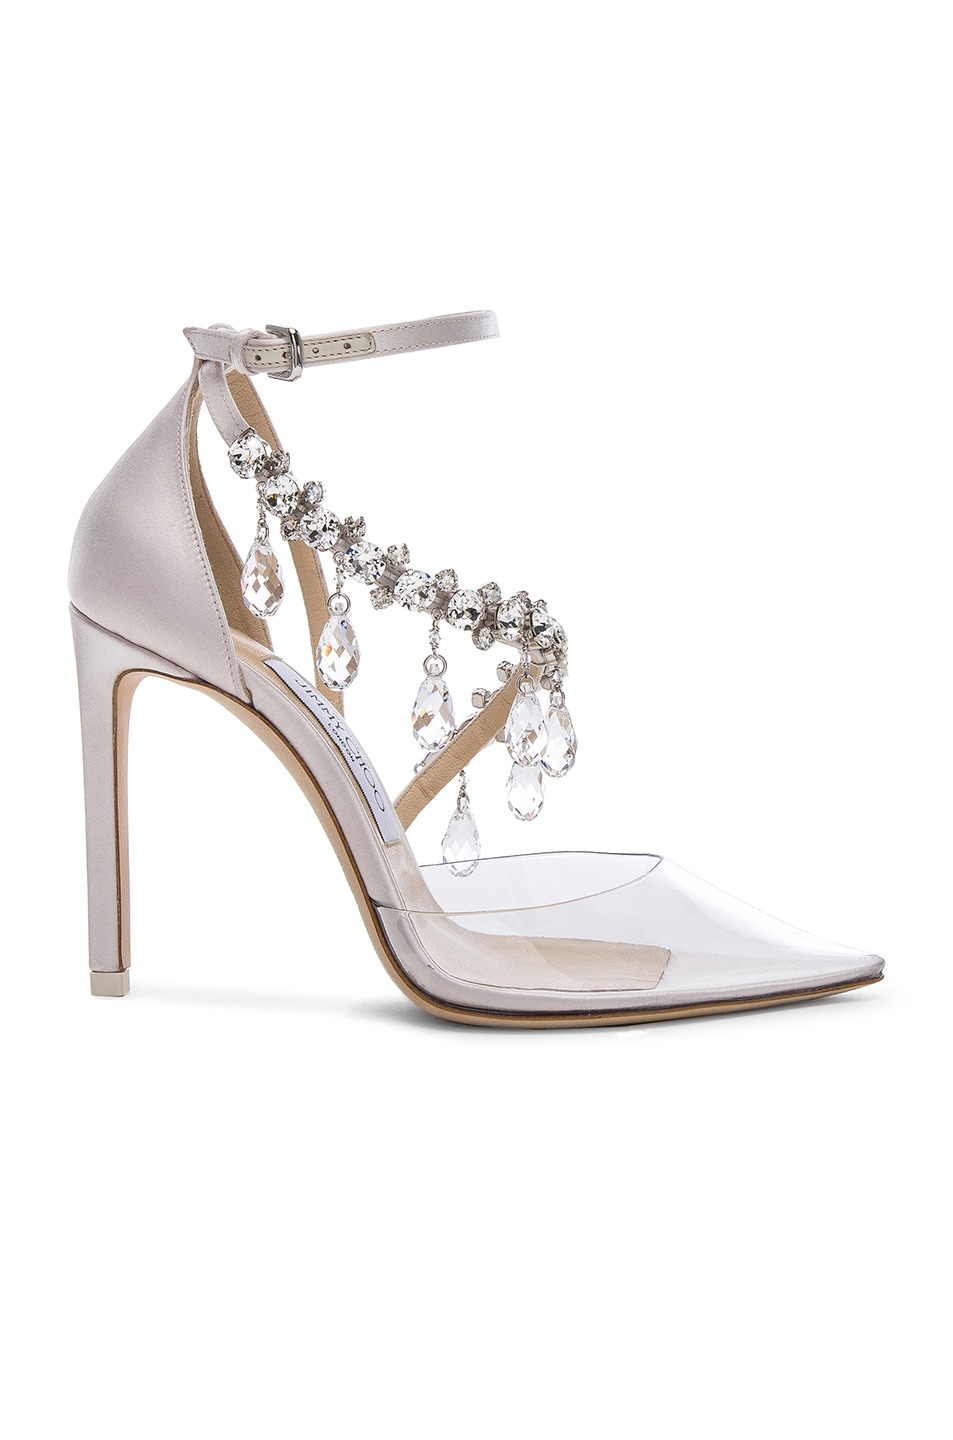 Image 1 of OFF-WHITE x Jimmy Choo Satin Victoria Pumps in Off White